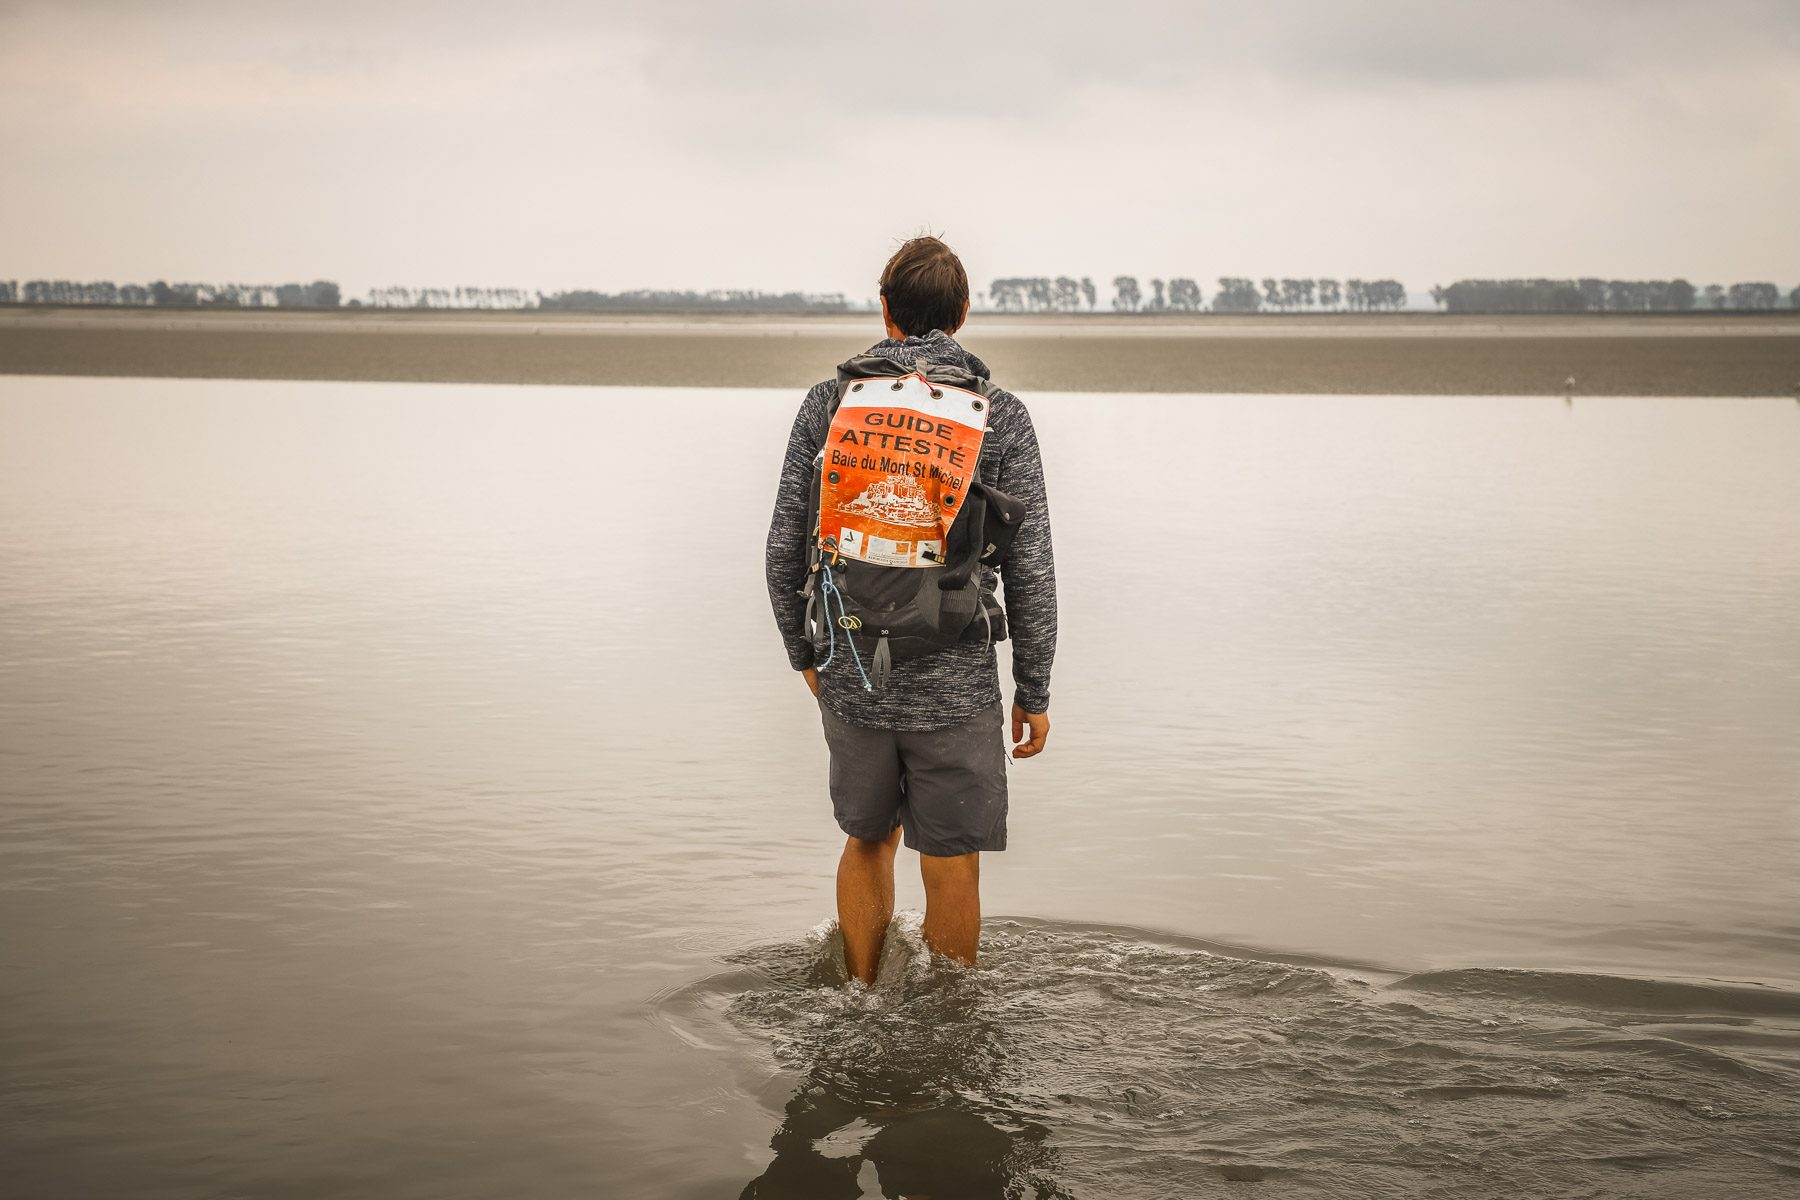 guide-independant-traversee-baie-mont-saint-michel